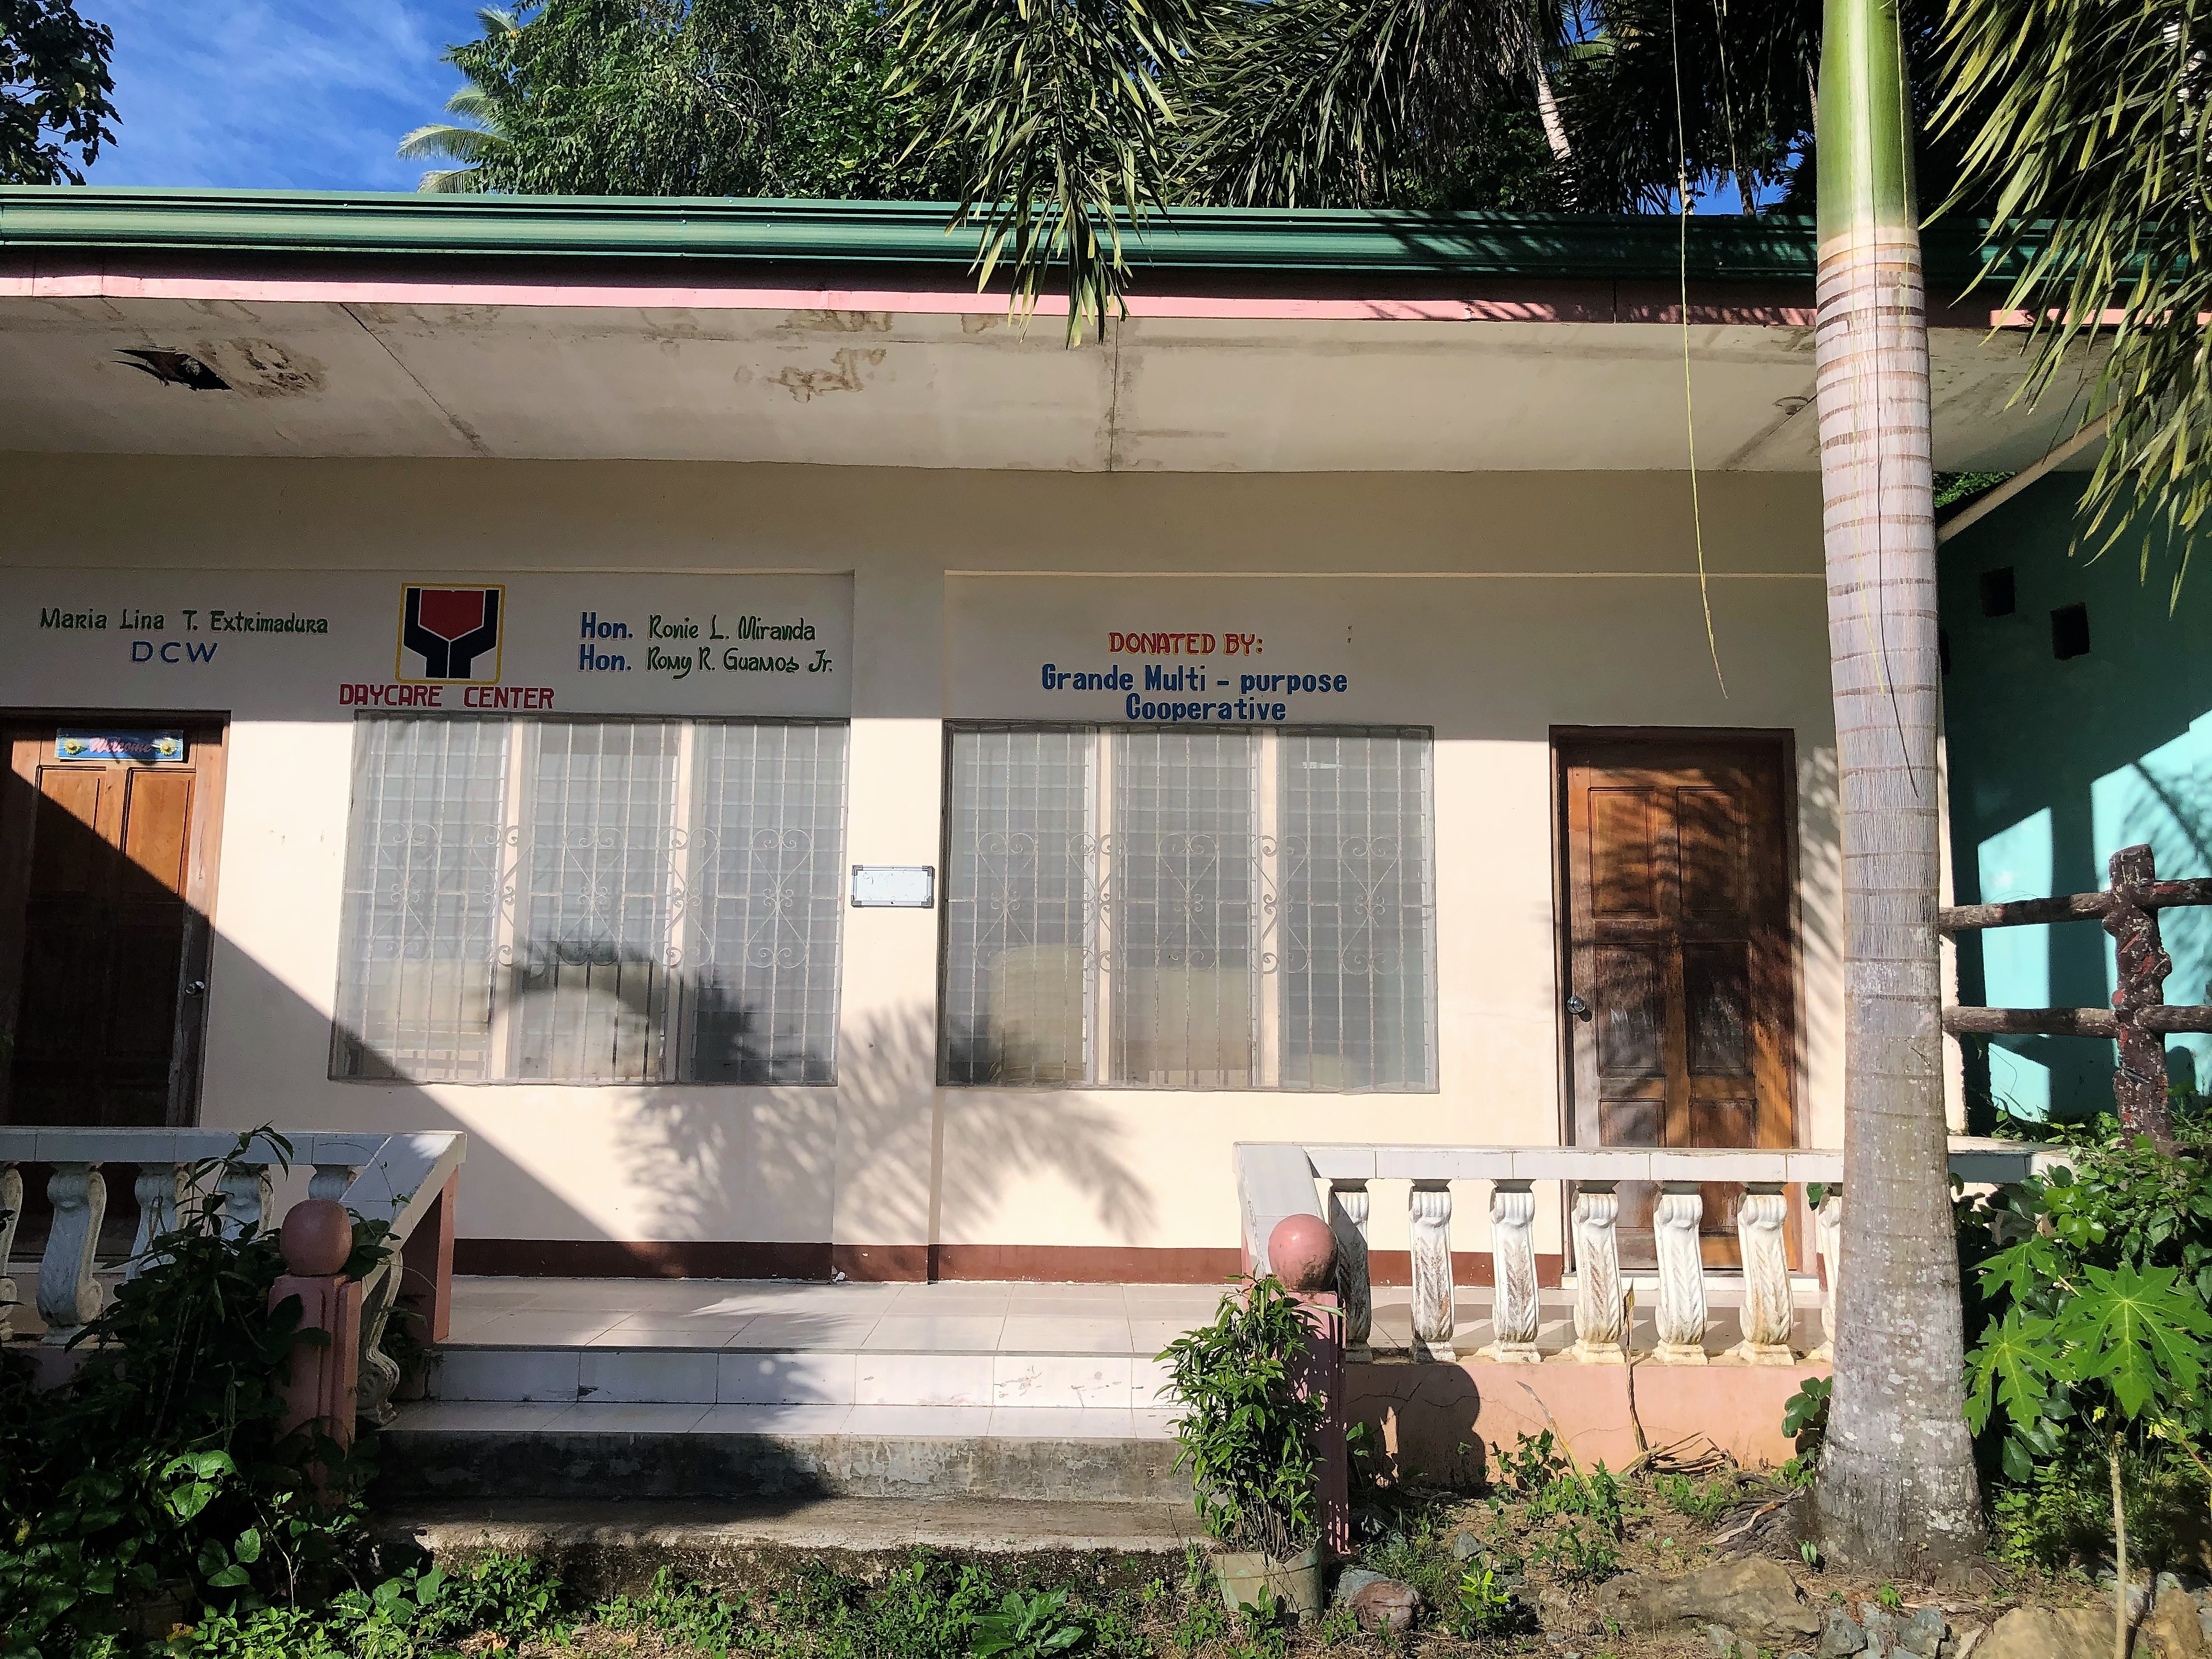 One the buildings donated by Grande Multipurpose Cooperative used as a day care center for Brgy. Bulo, Buenavista